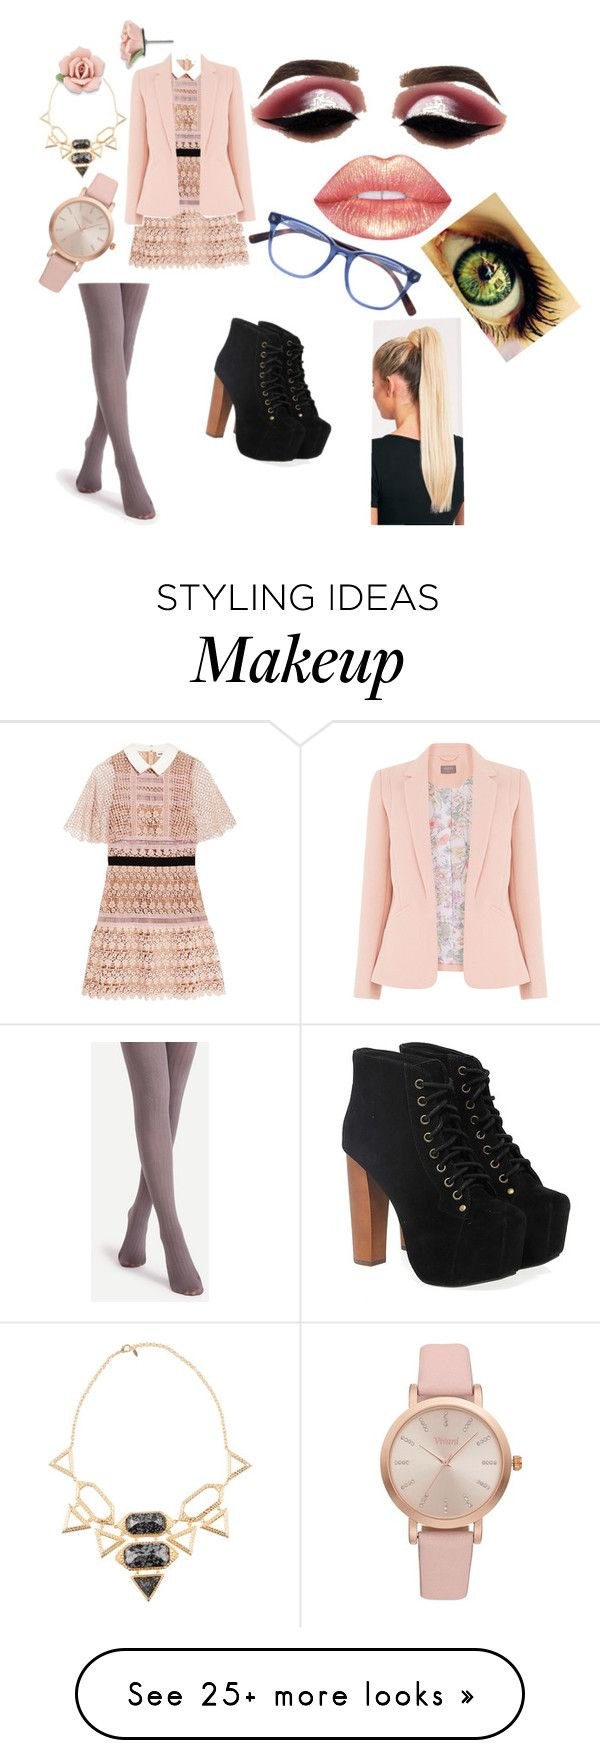 """""""Quinn #1"""" by trisrebel on Polyvore featuring self-portrait, Jeffrey Campbell, Beauty Bakerie, Isharya, Vivani and 1928"""